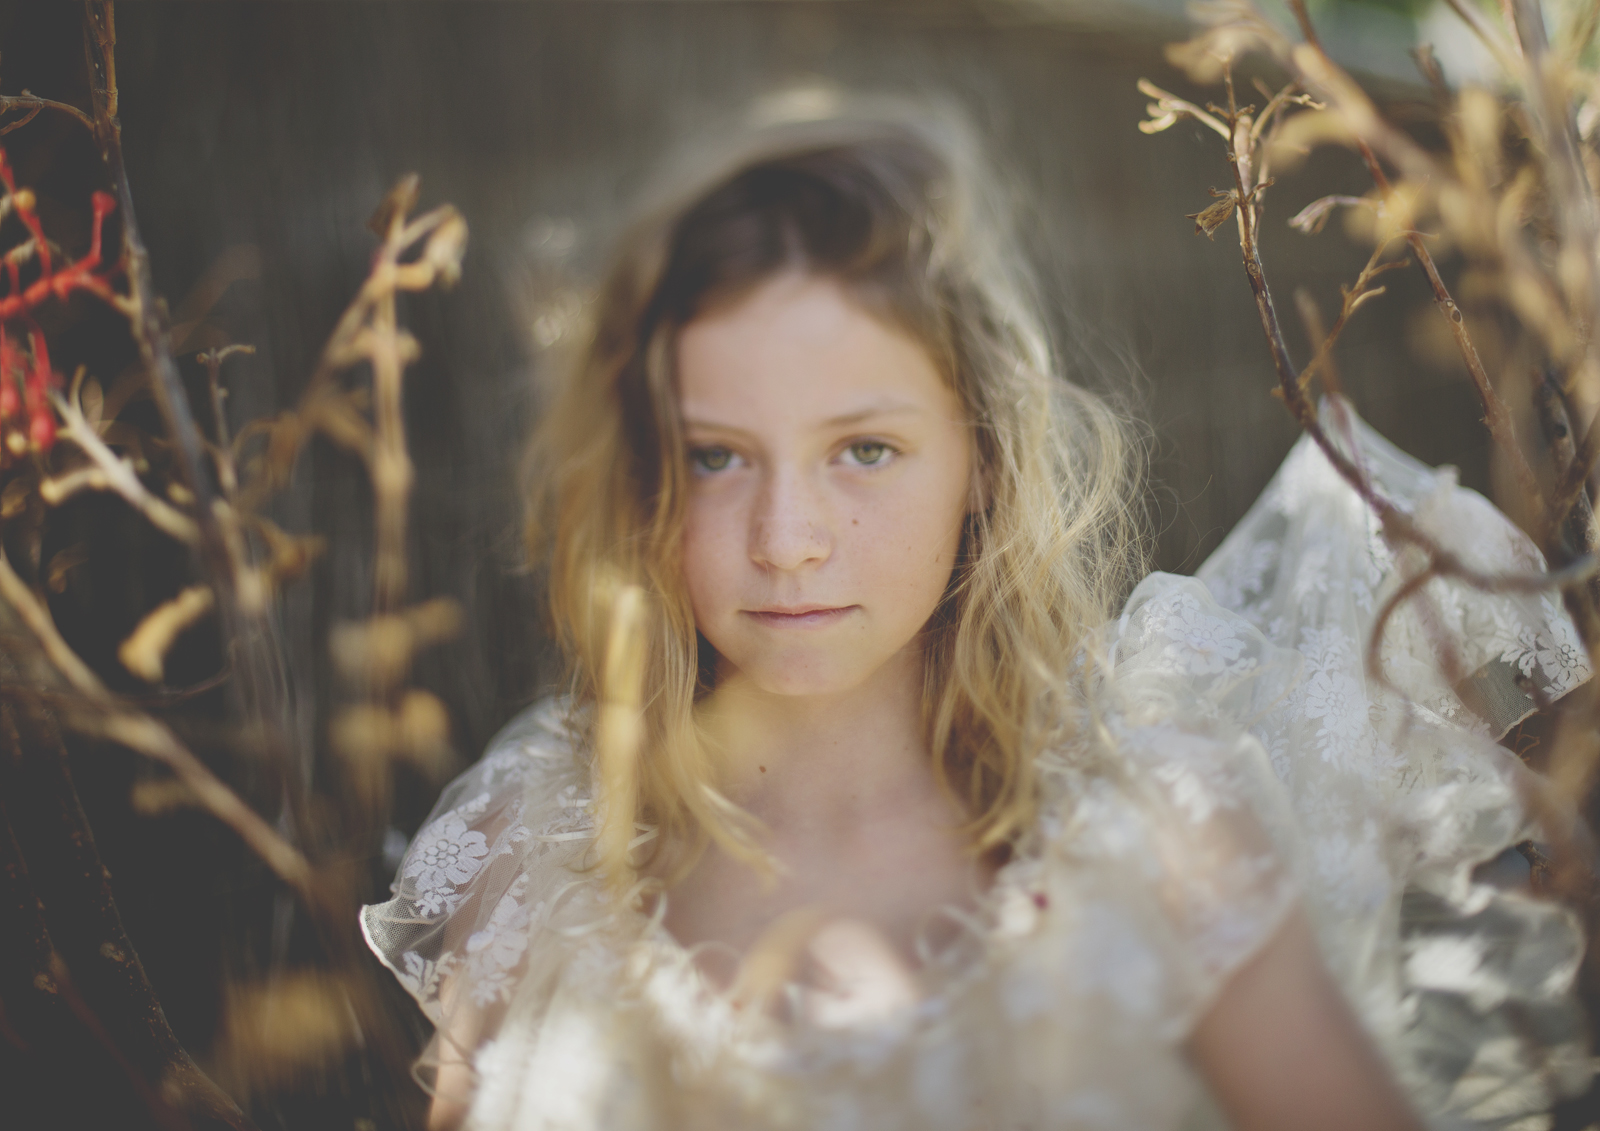 Freelensed image of Tween Girl